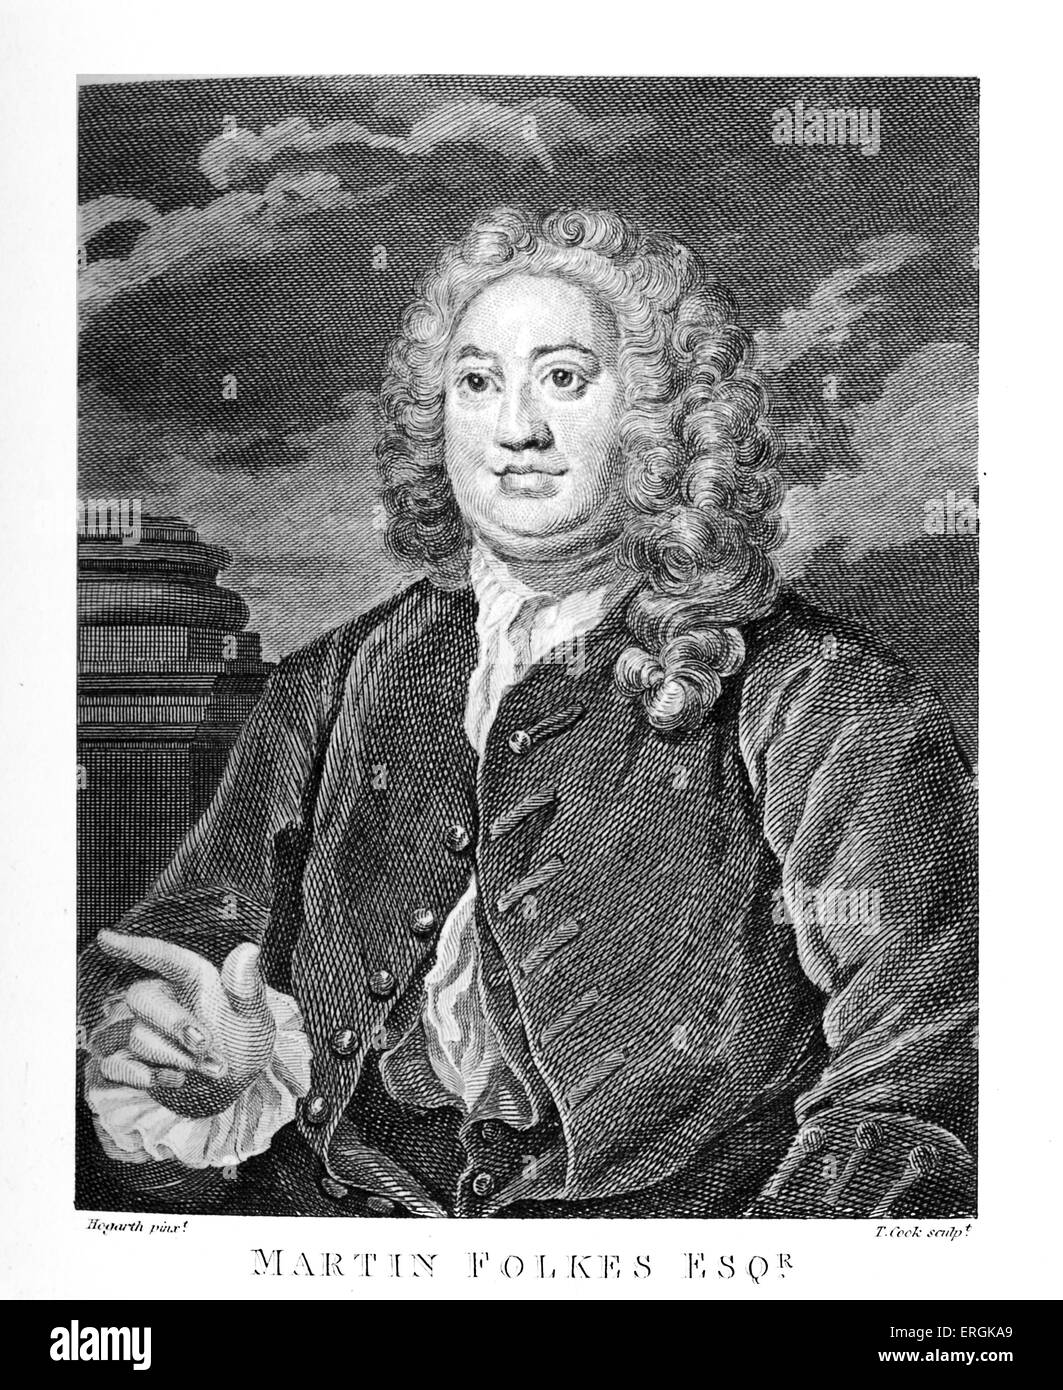 Martin Folkes esq. by William Hogarth, 1742. Folkes (1690-1754) was president of the Royal Society and vice-president - Stock Image